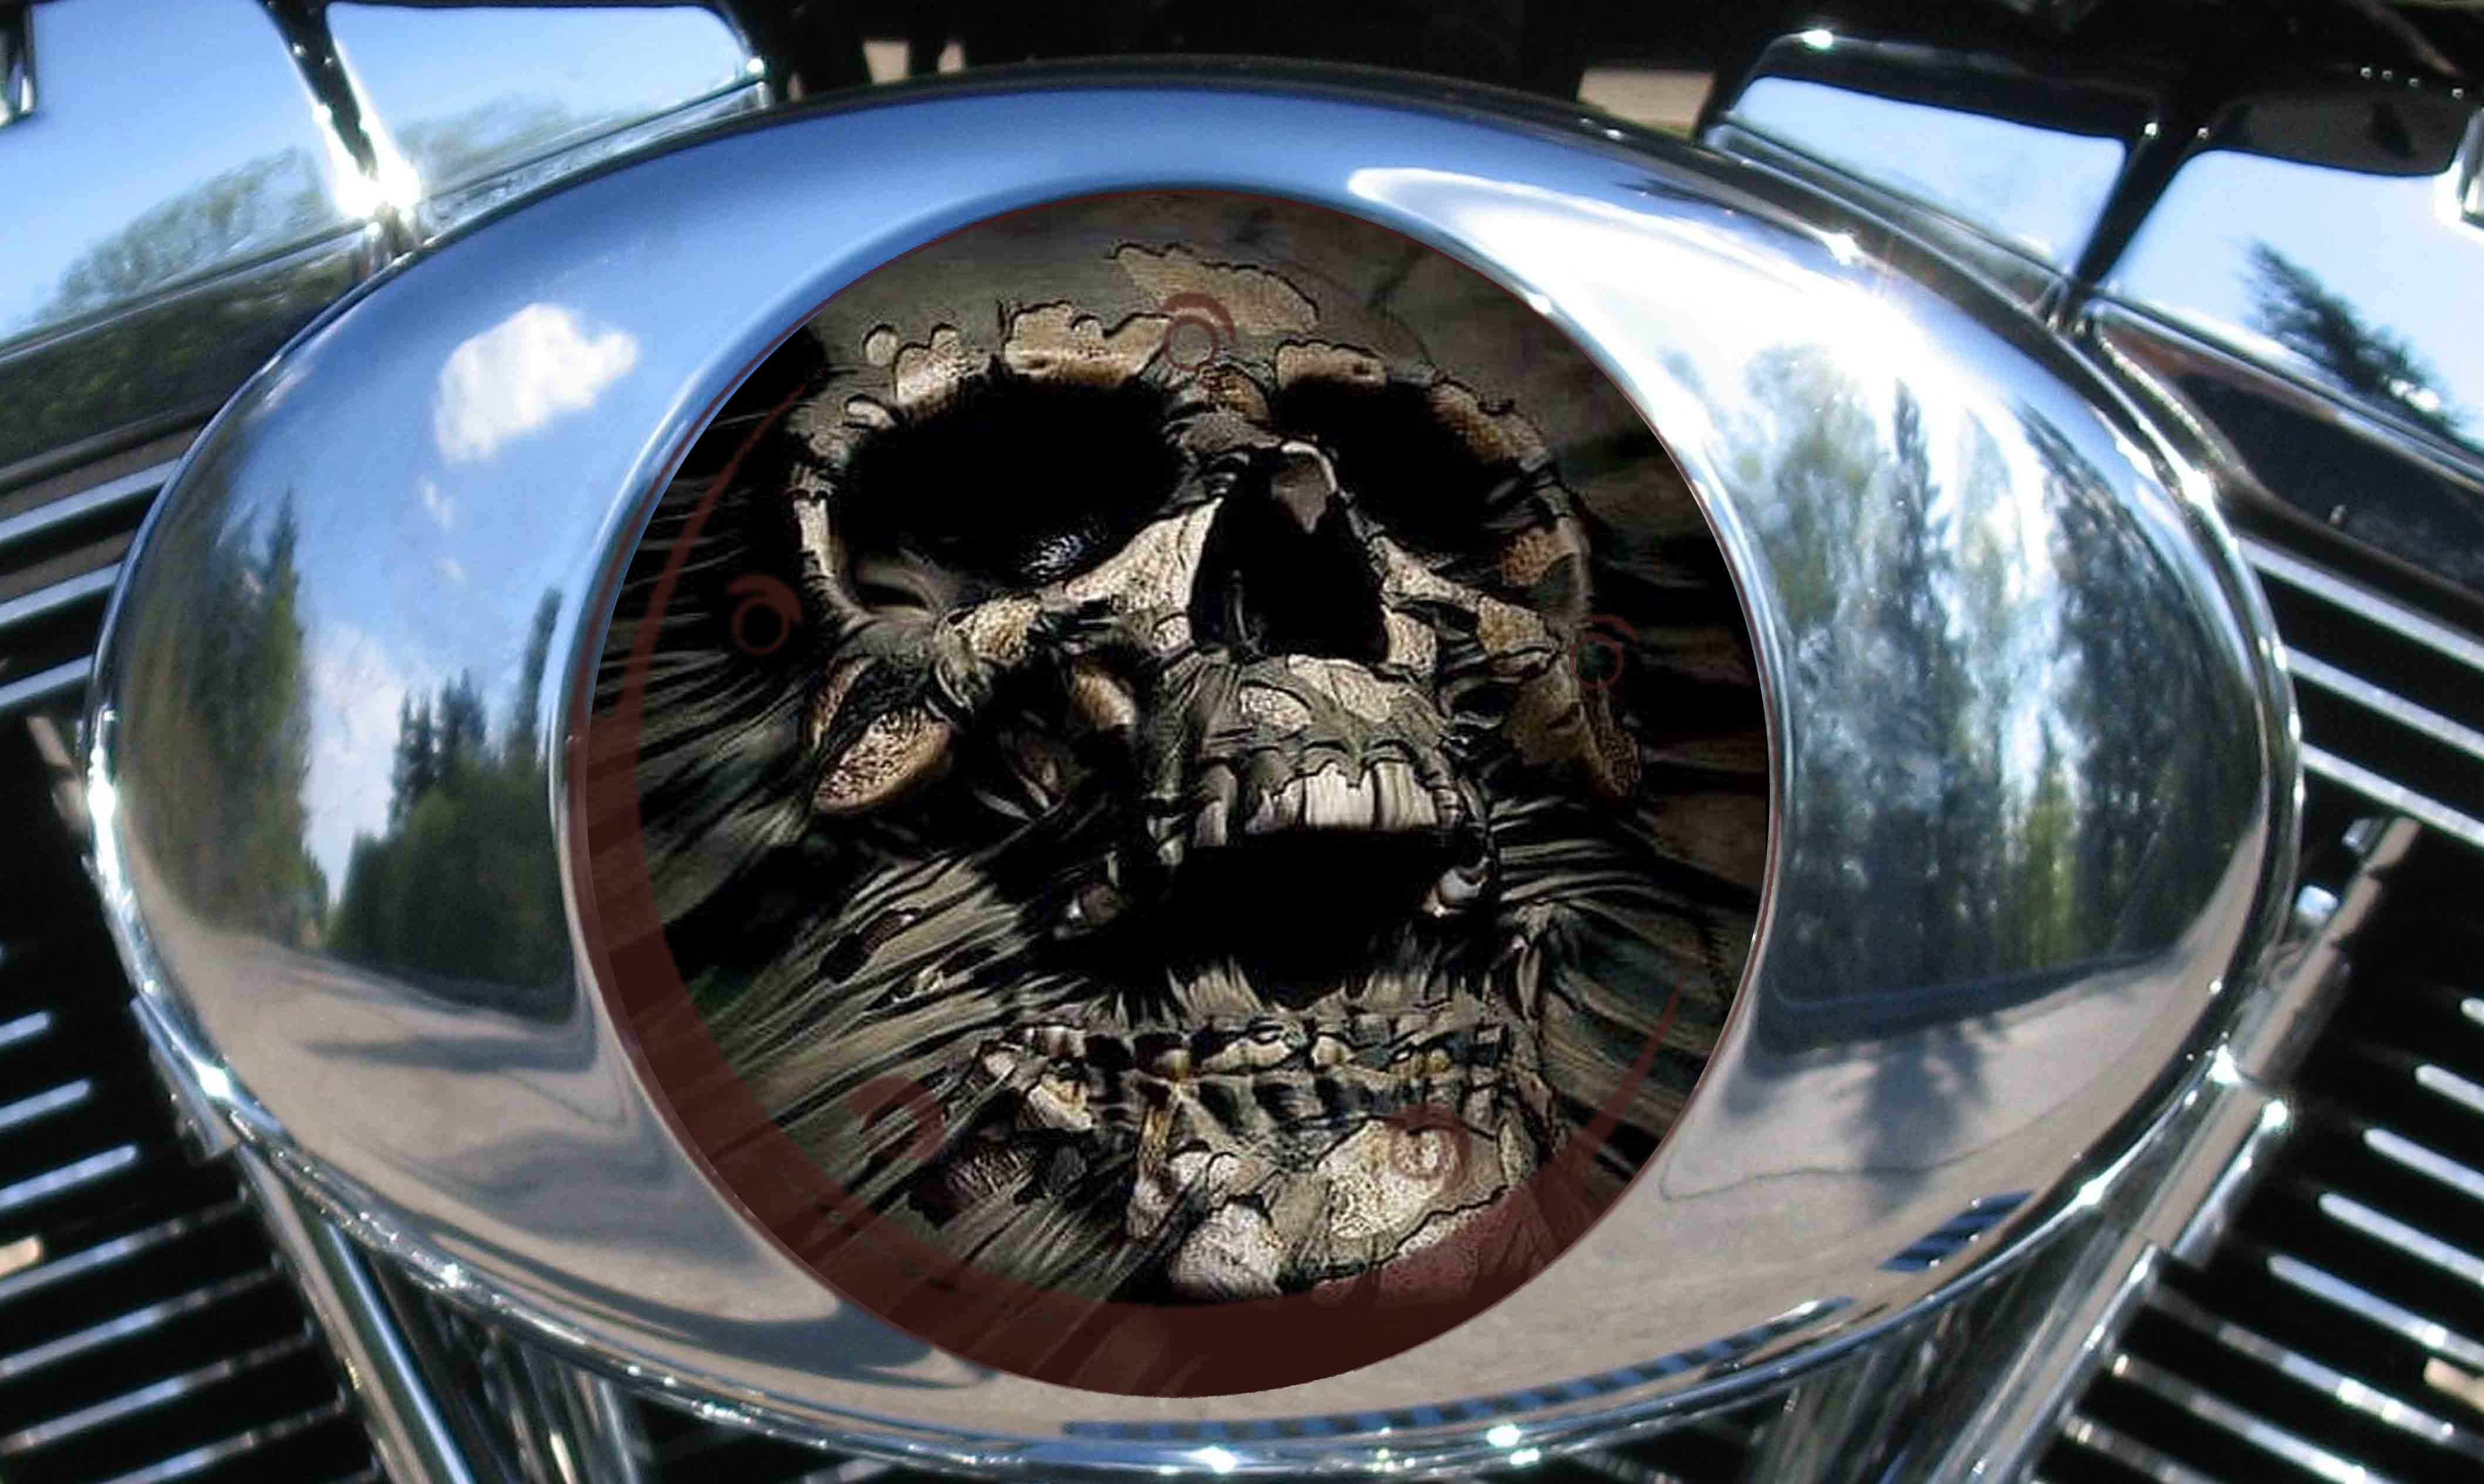 Harley Air Cleaner Cover - FOSSIL SKULL